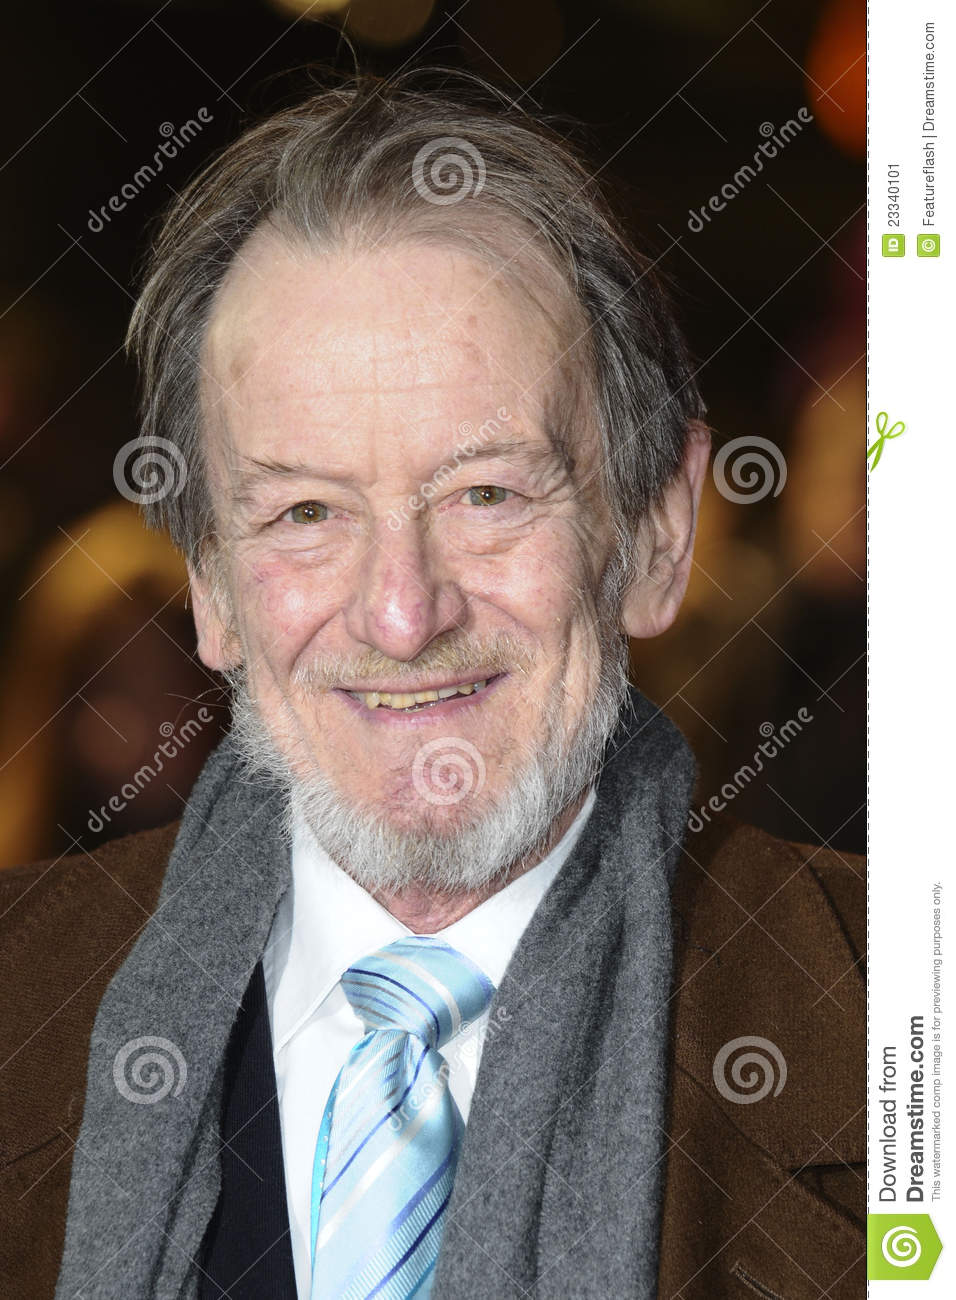 Ronald Pickup doctor who